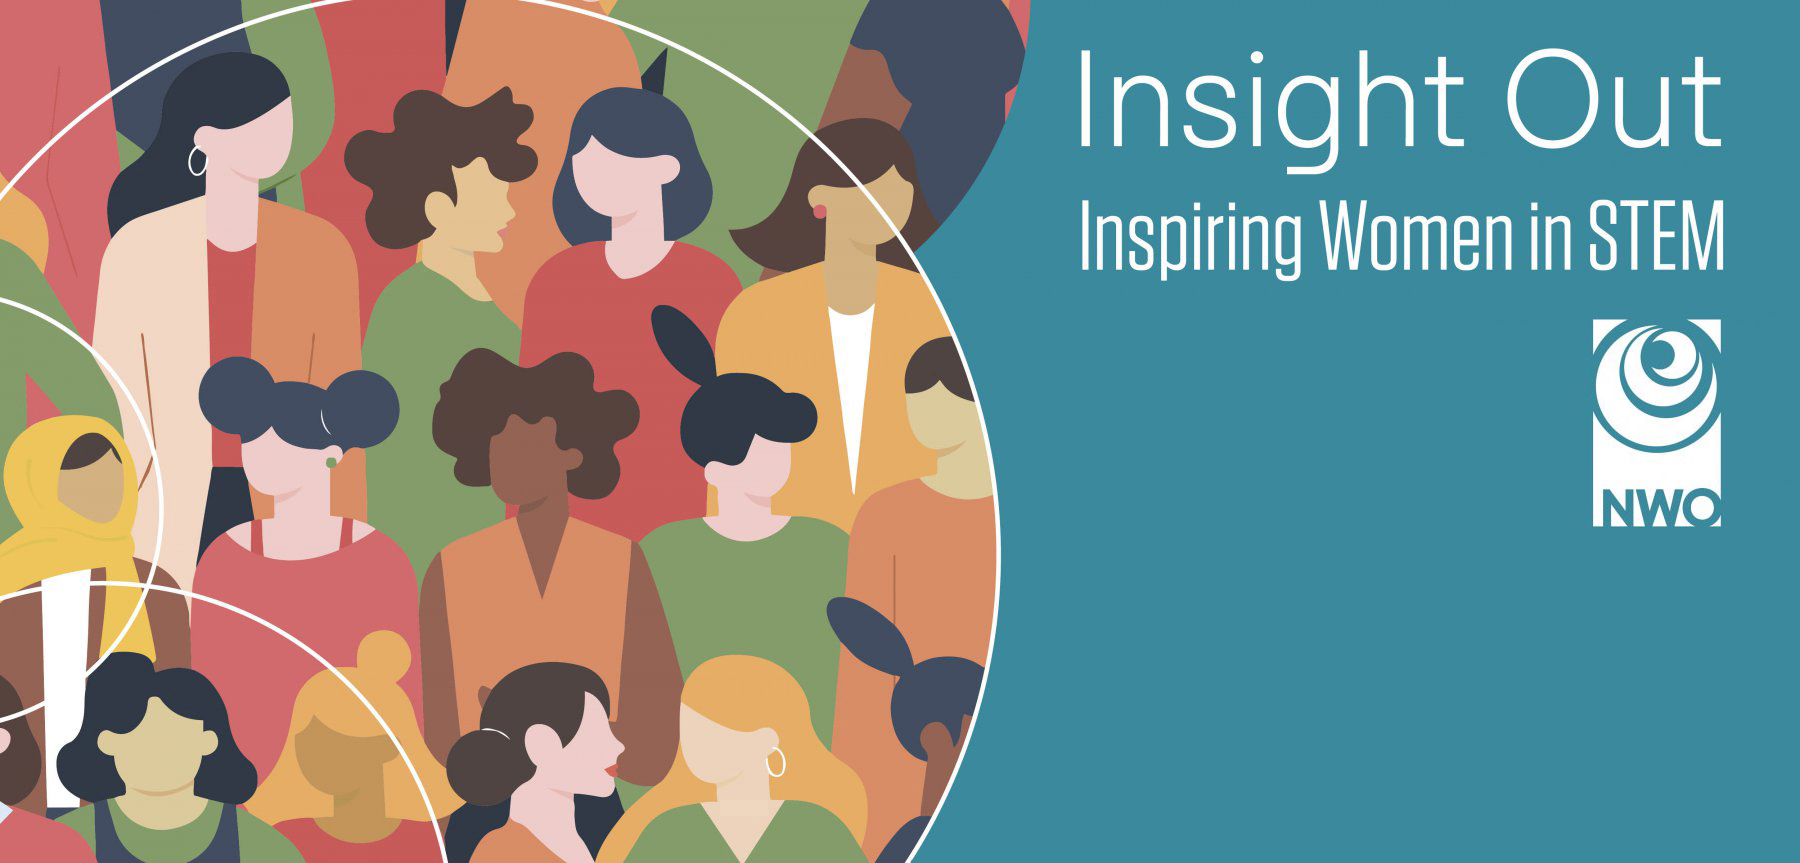 Event: Insight Out event for women in STEM